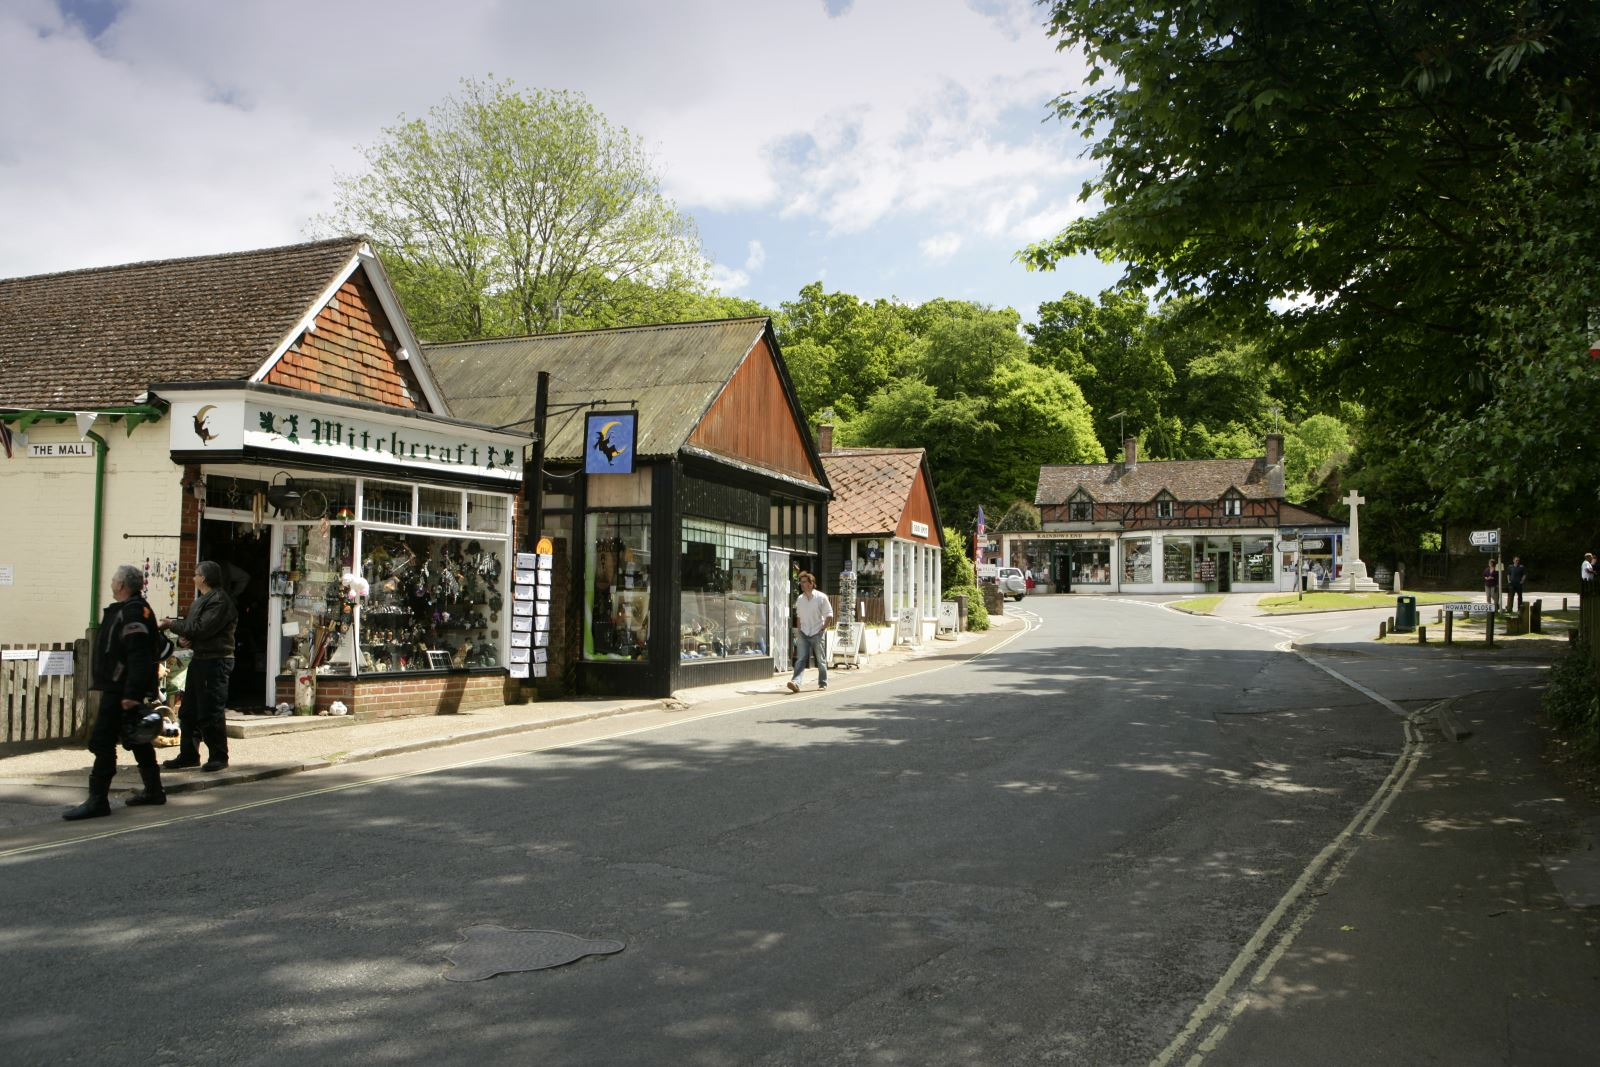 burley village centre in the new forest